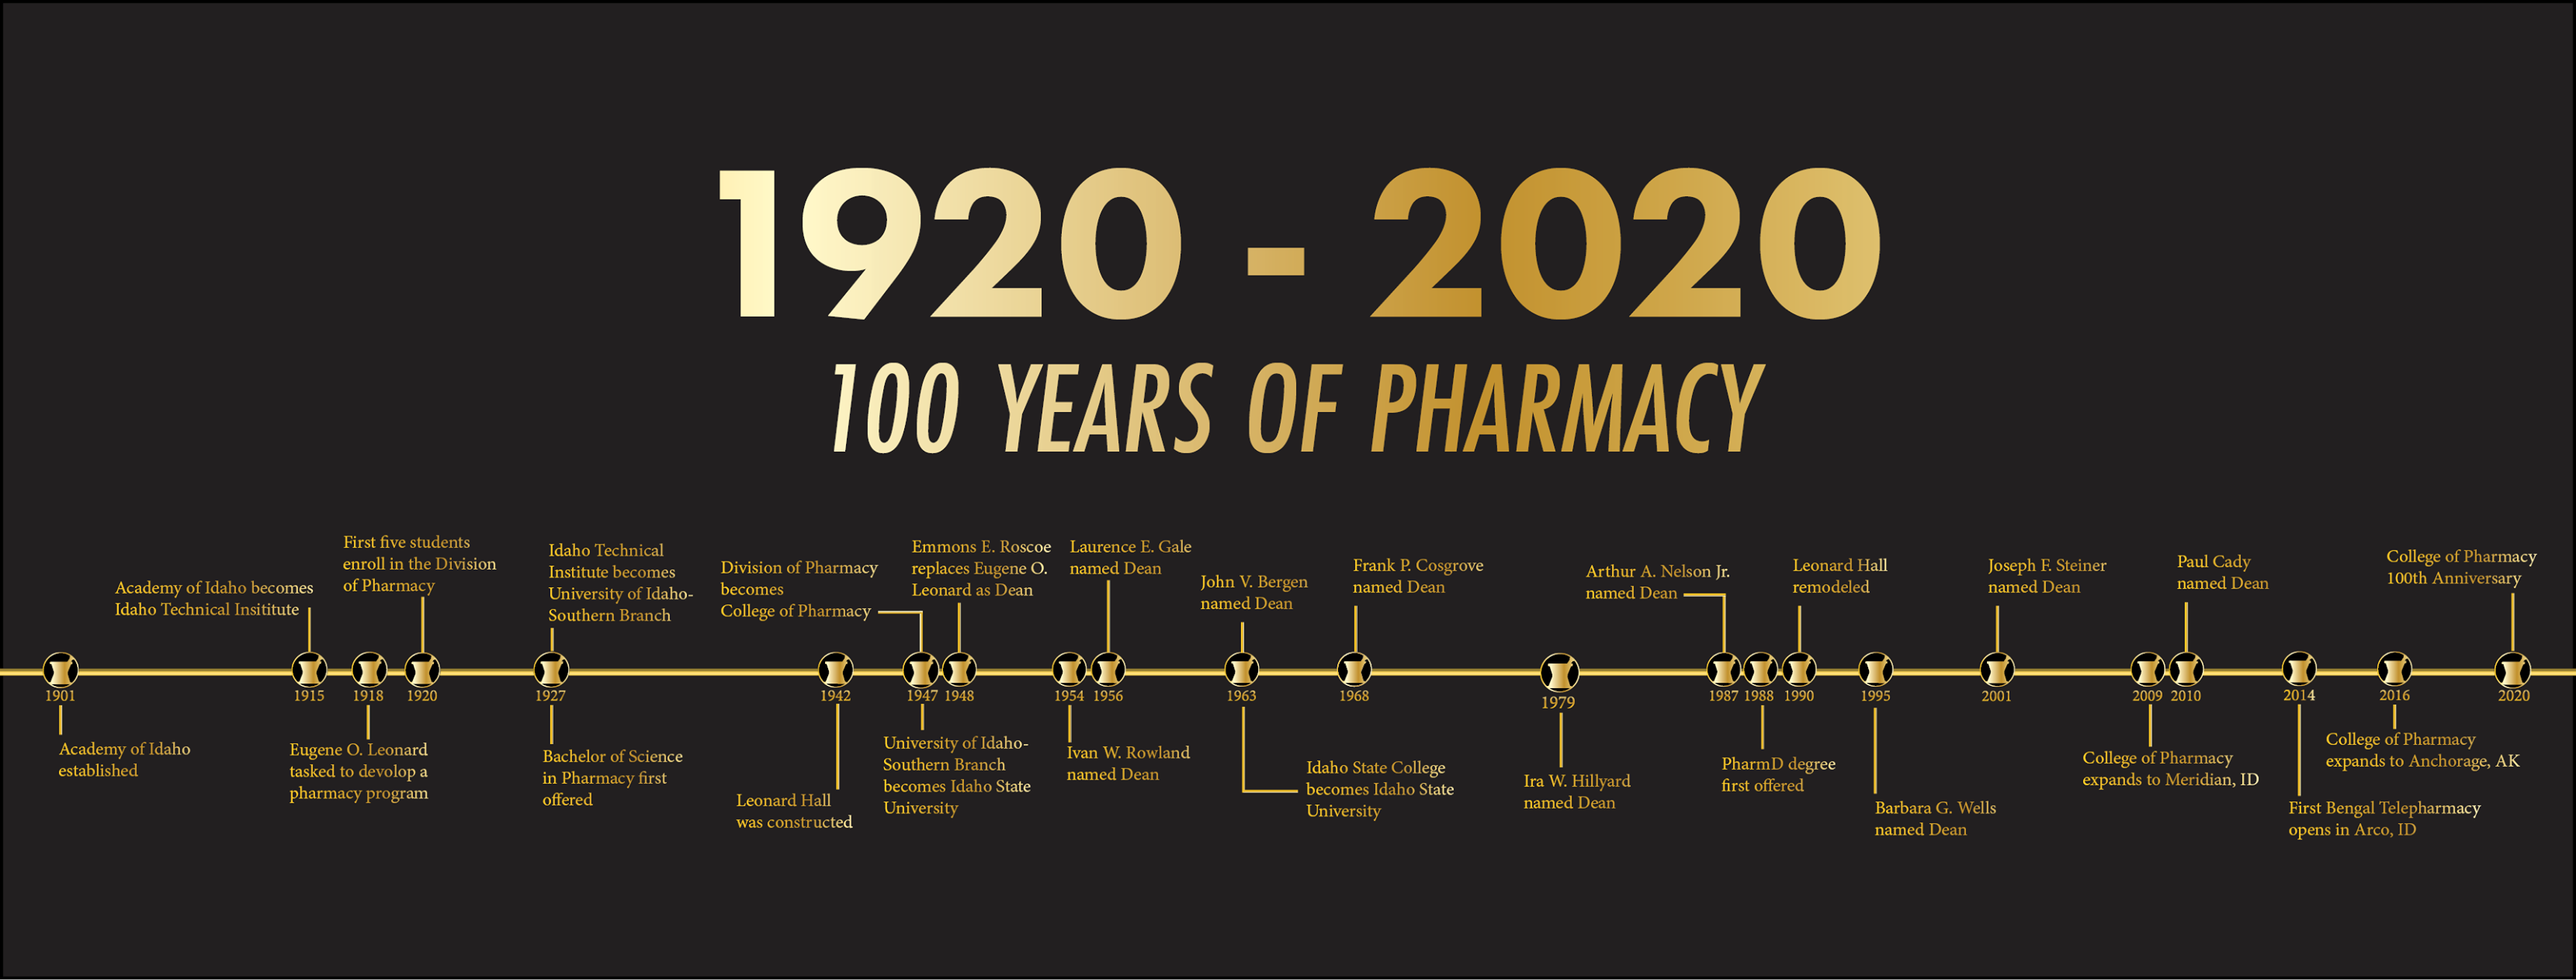 a timeline showing 100 years of progress at the college of pharmacy